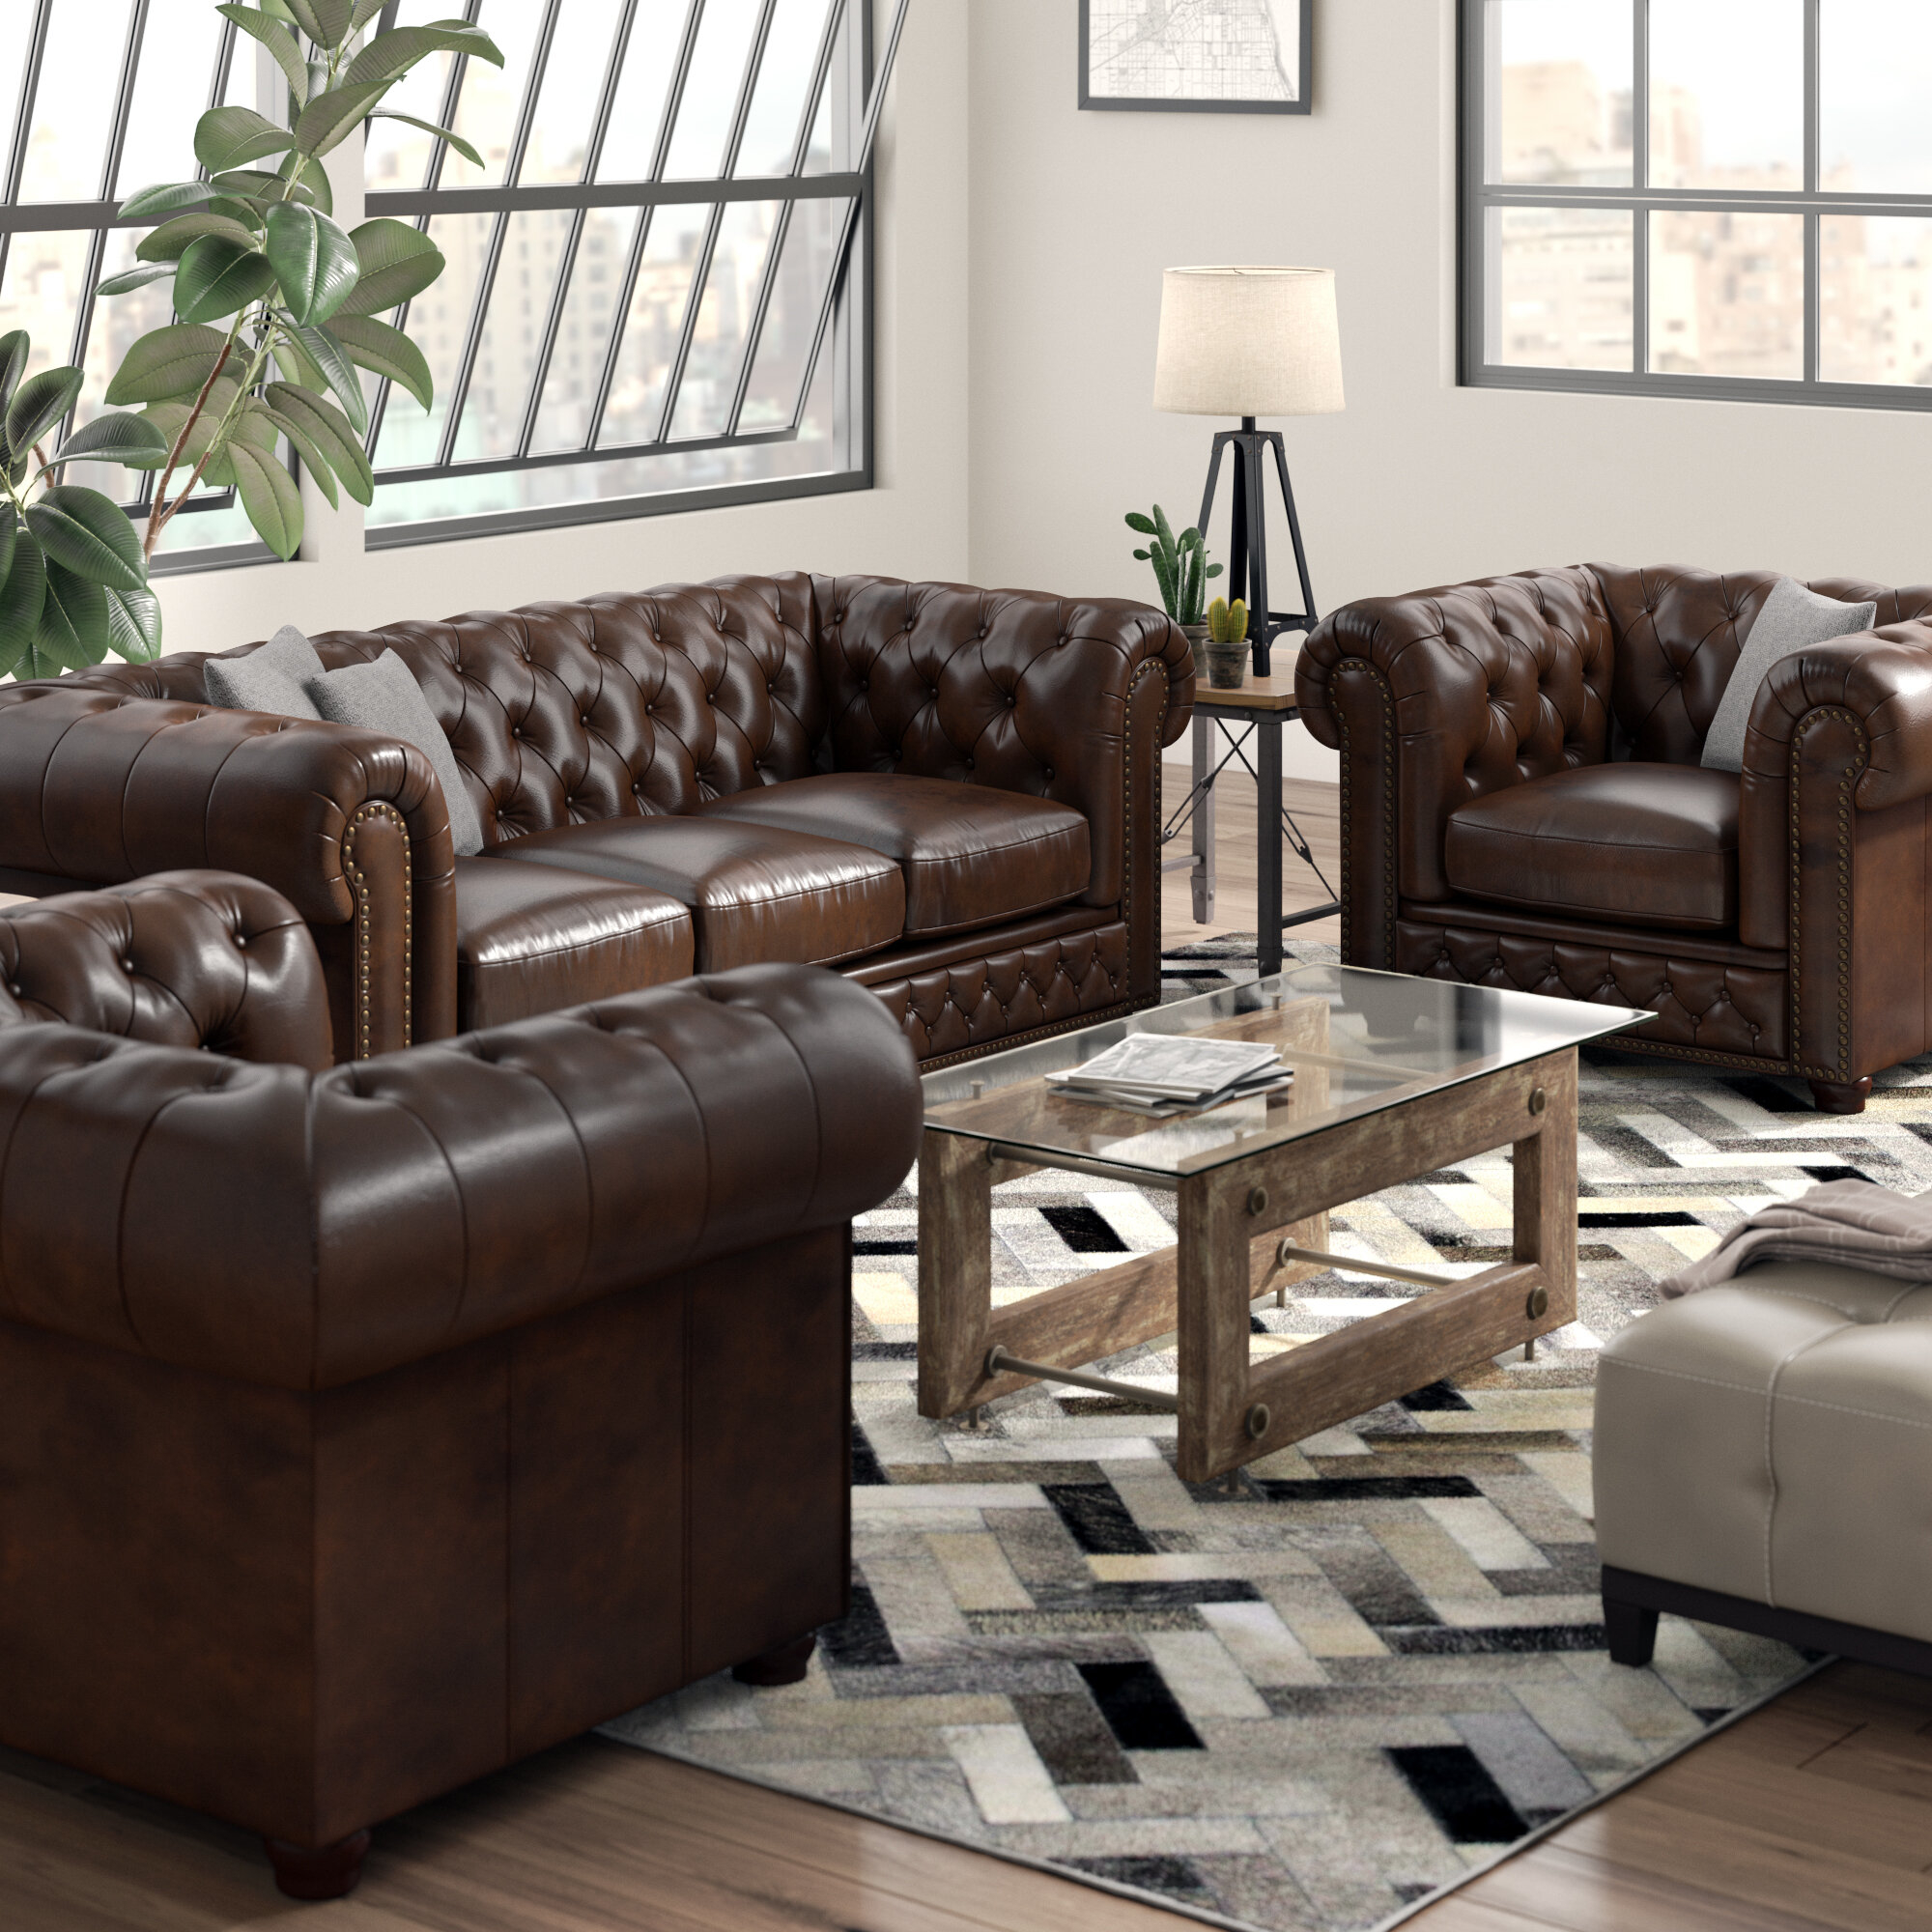 Worcester Leather 3 Piece Living Room Set pertaining to Living Room Complete Sets